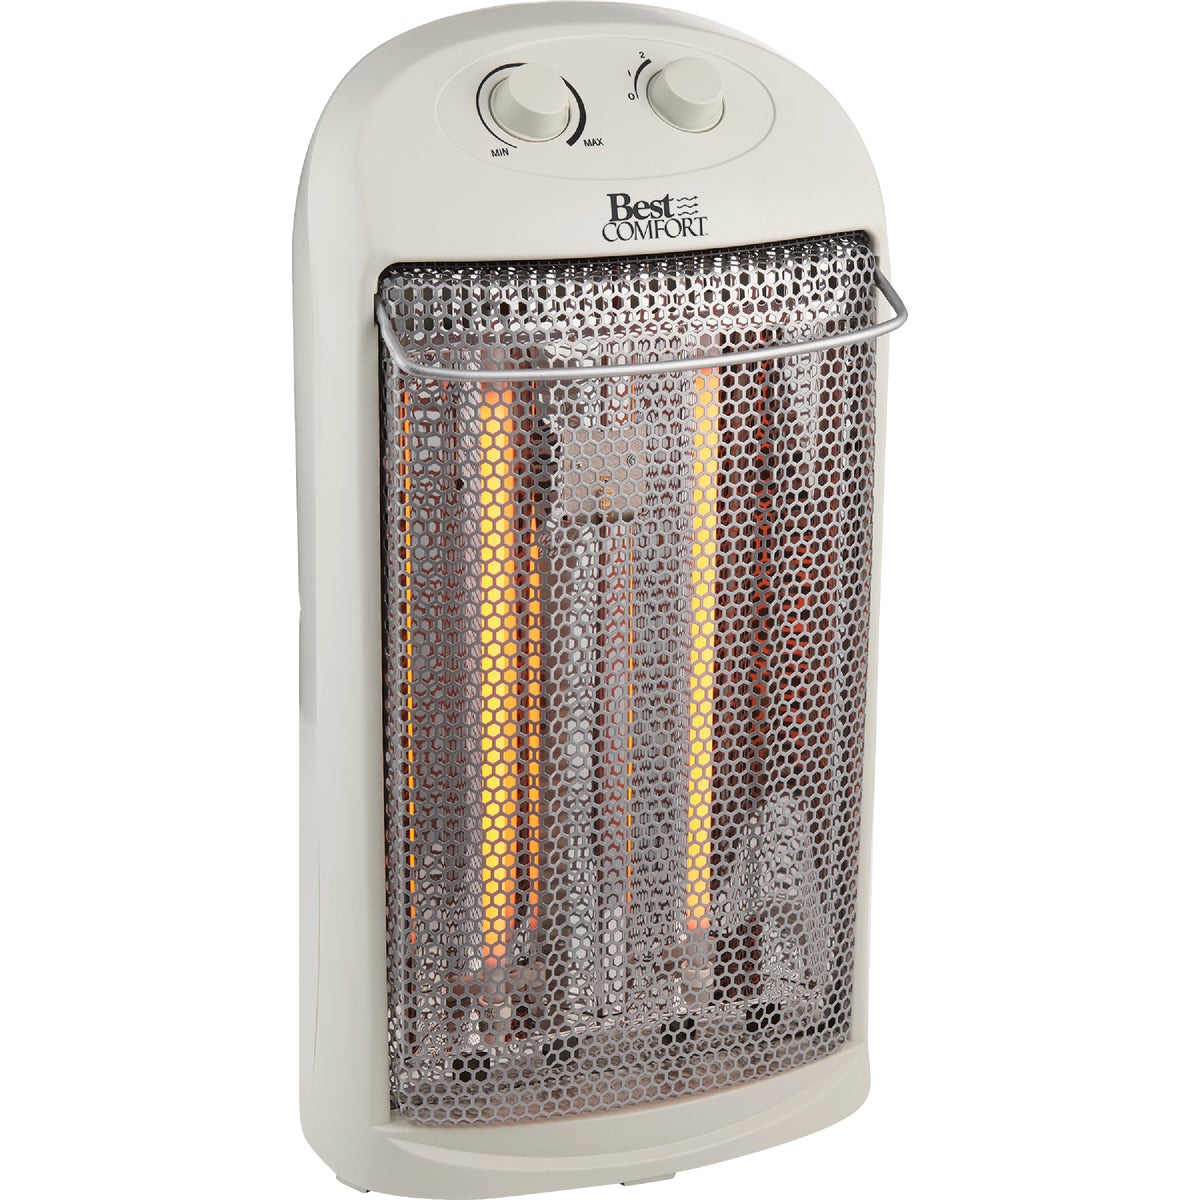 TOWER QUARTZ HEATER - HQH307 by Holmes Jarden Direct